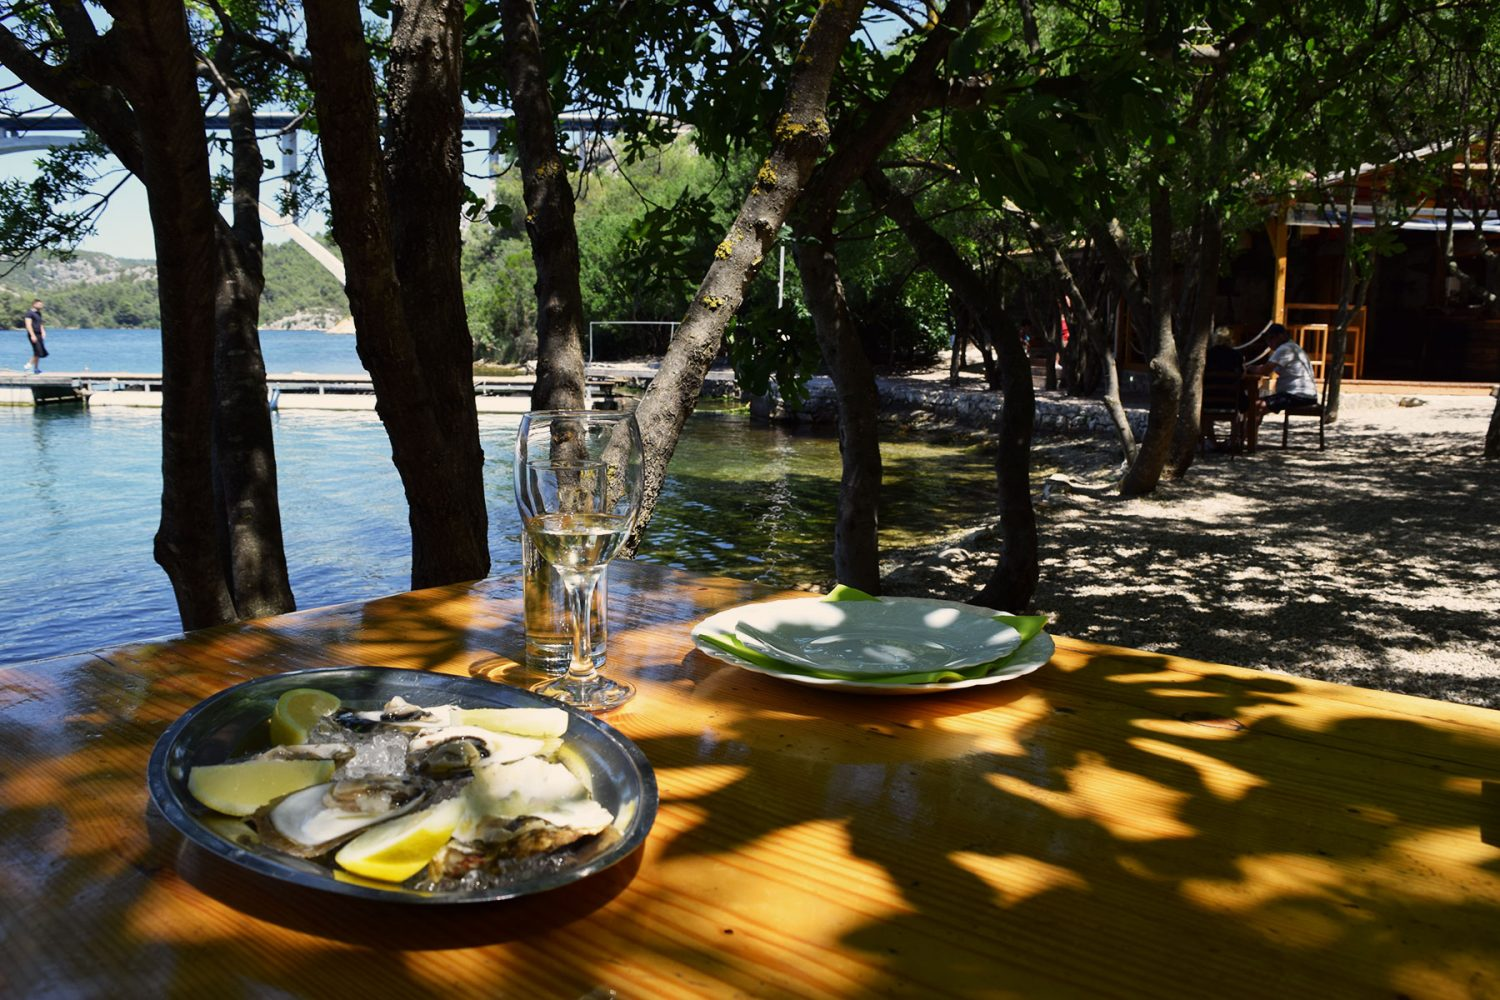 Archipelago Tours Krka Experience Private tour - Krka Experience Private Boat Tour photo of a table with wine and food in the shades of the trees in front of Vidrovača tavern